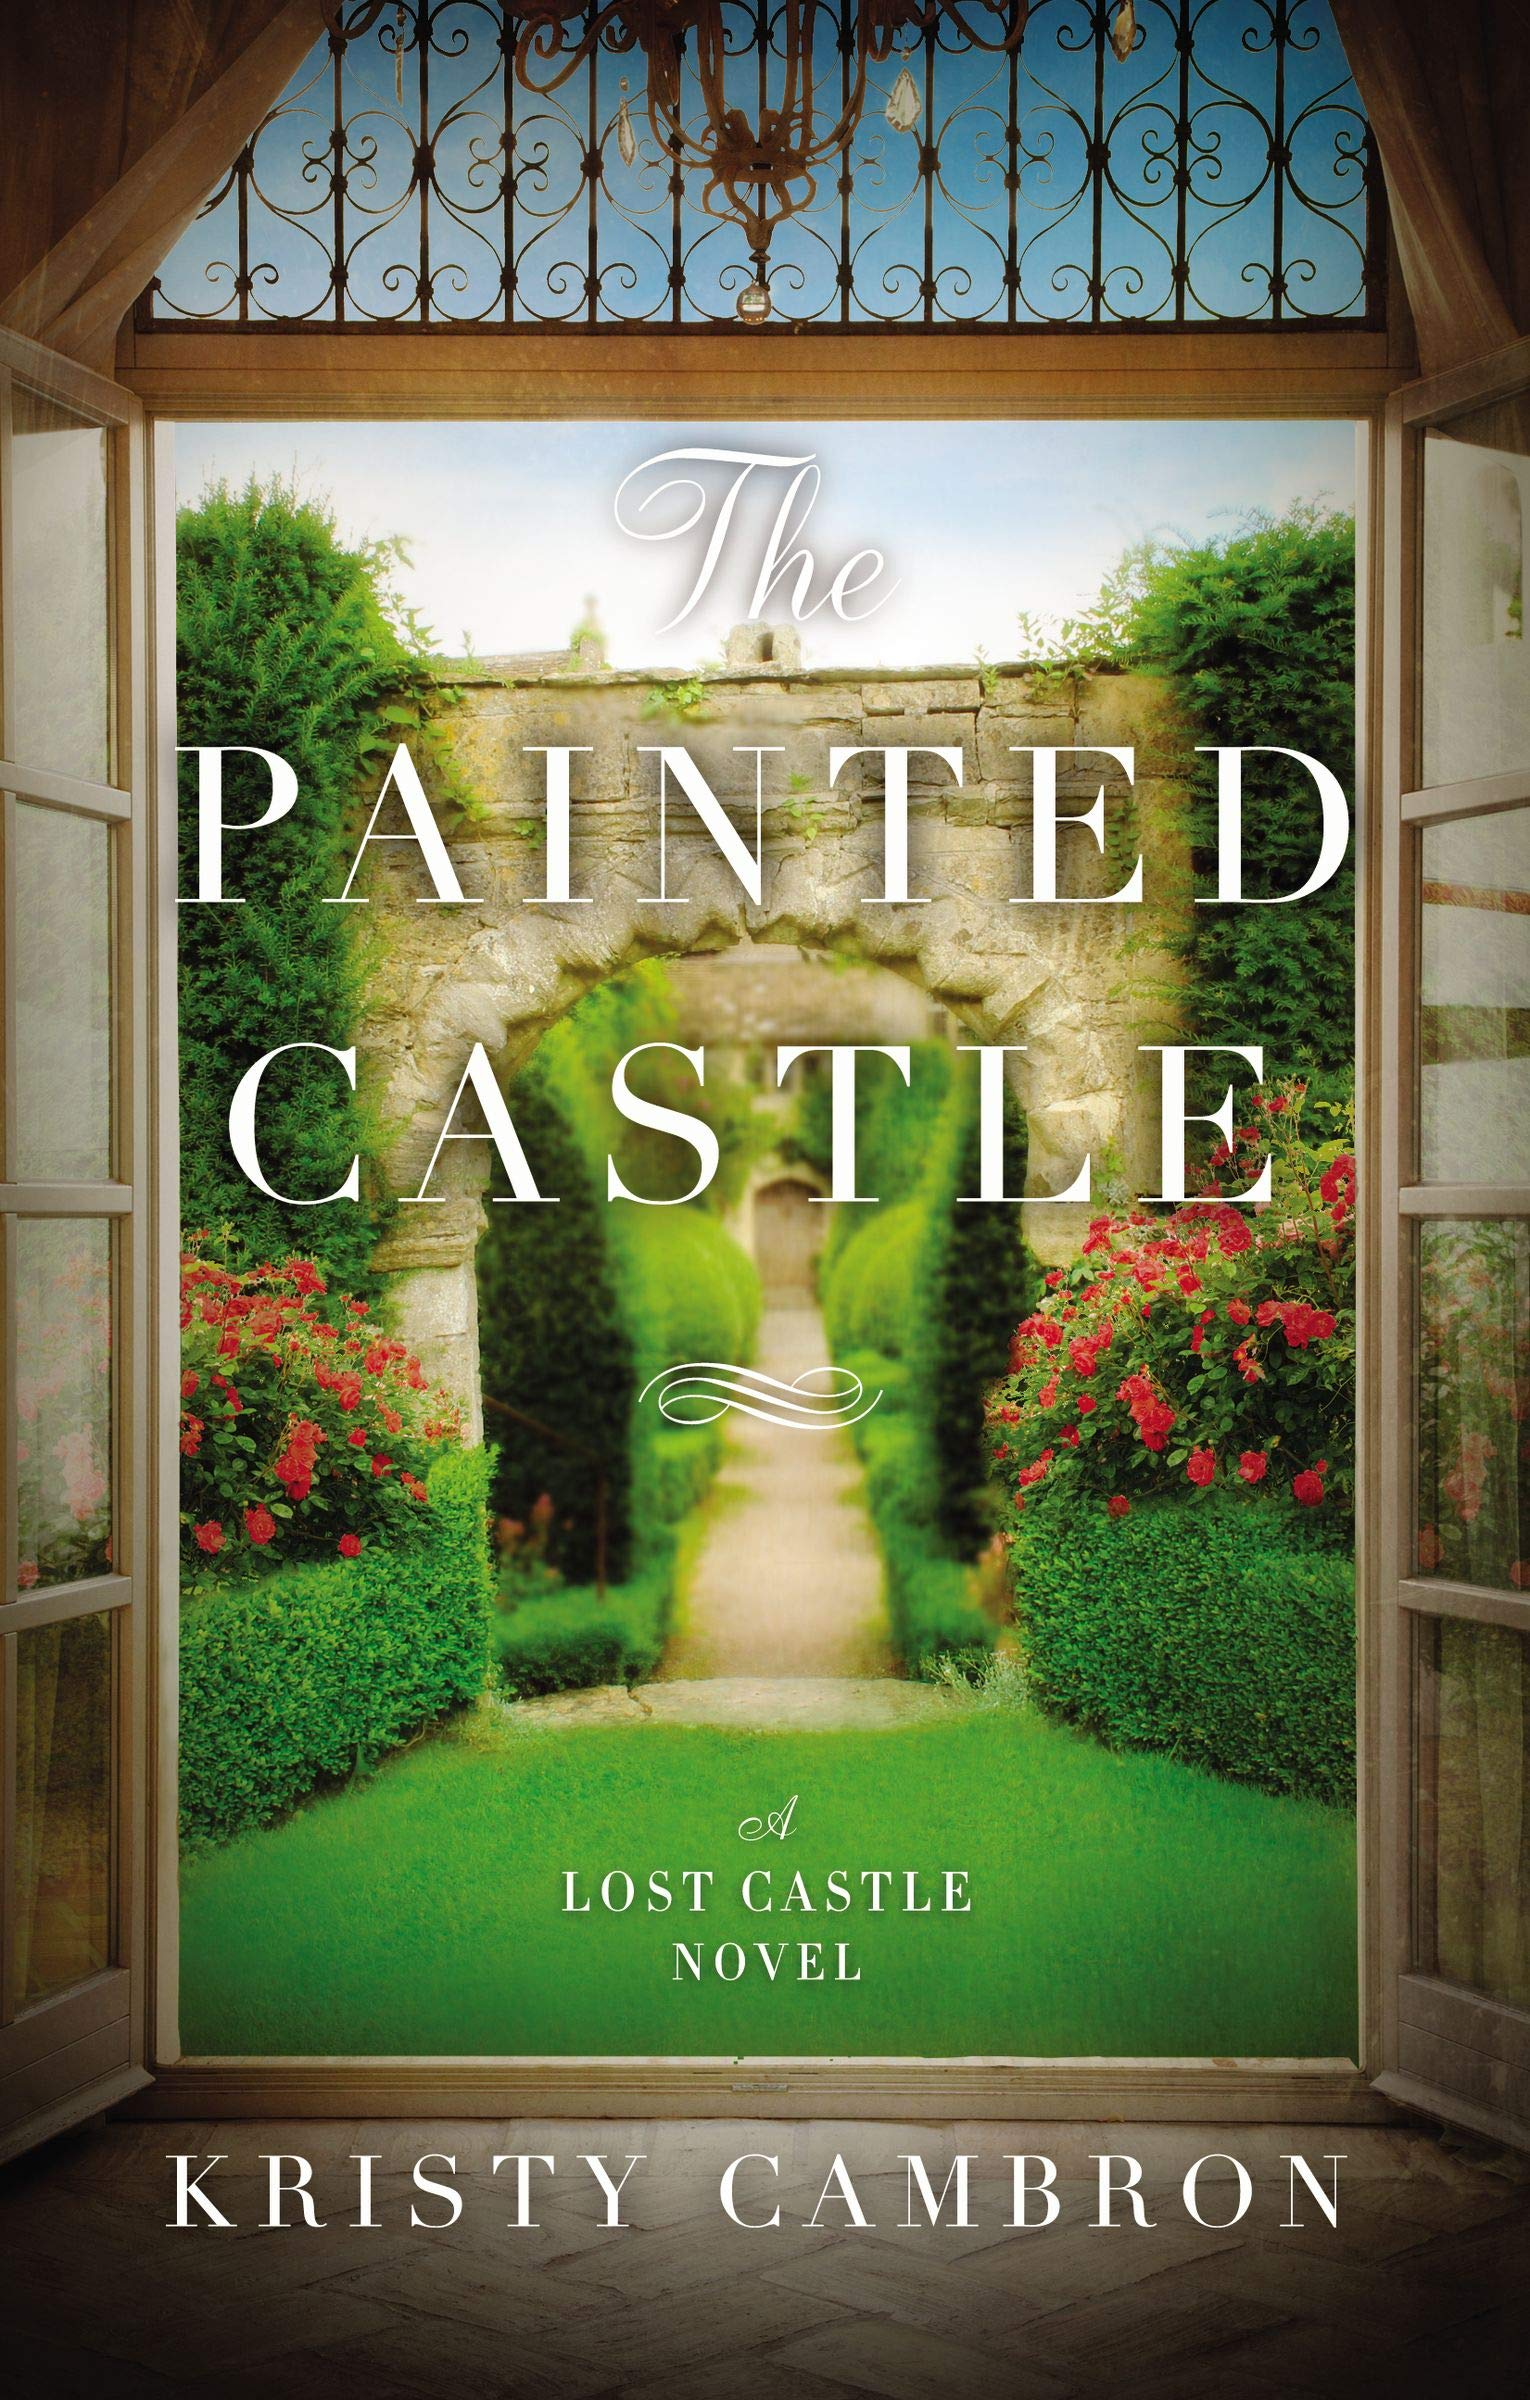 The Painted Castle by Kristy Cambron